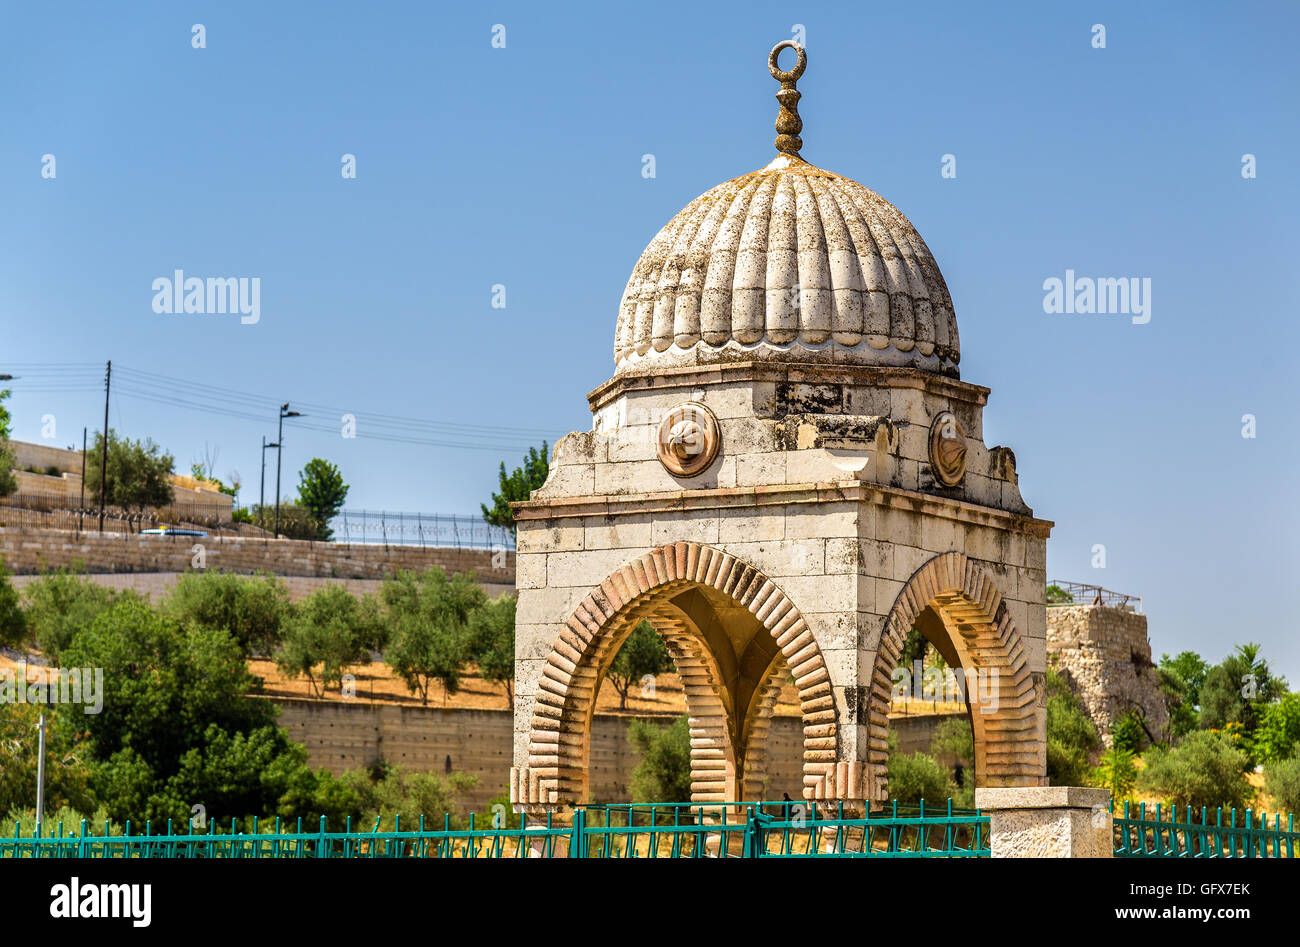 Tomb of Mujir al-Din in Jerusalem - Stock Image